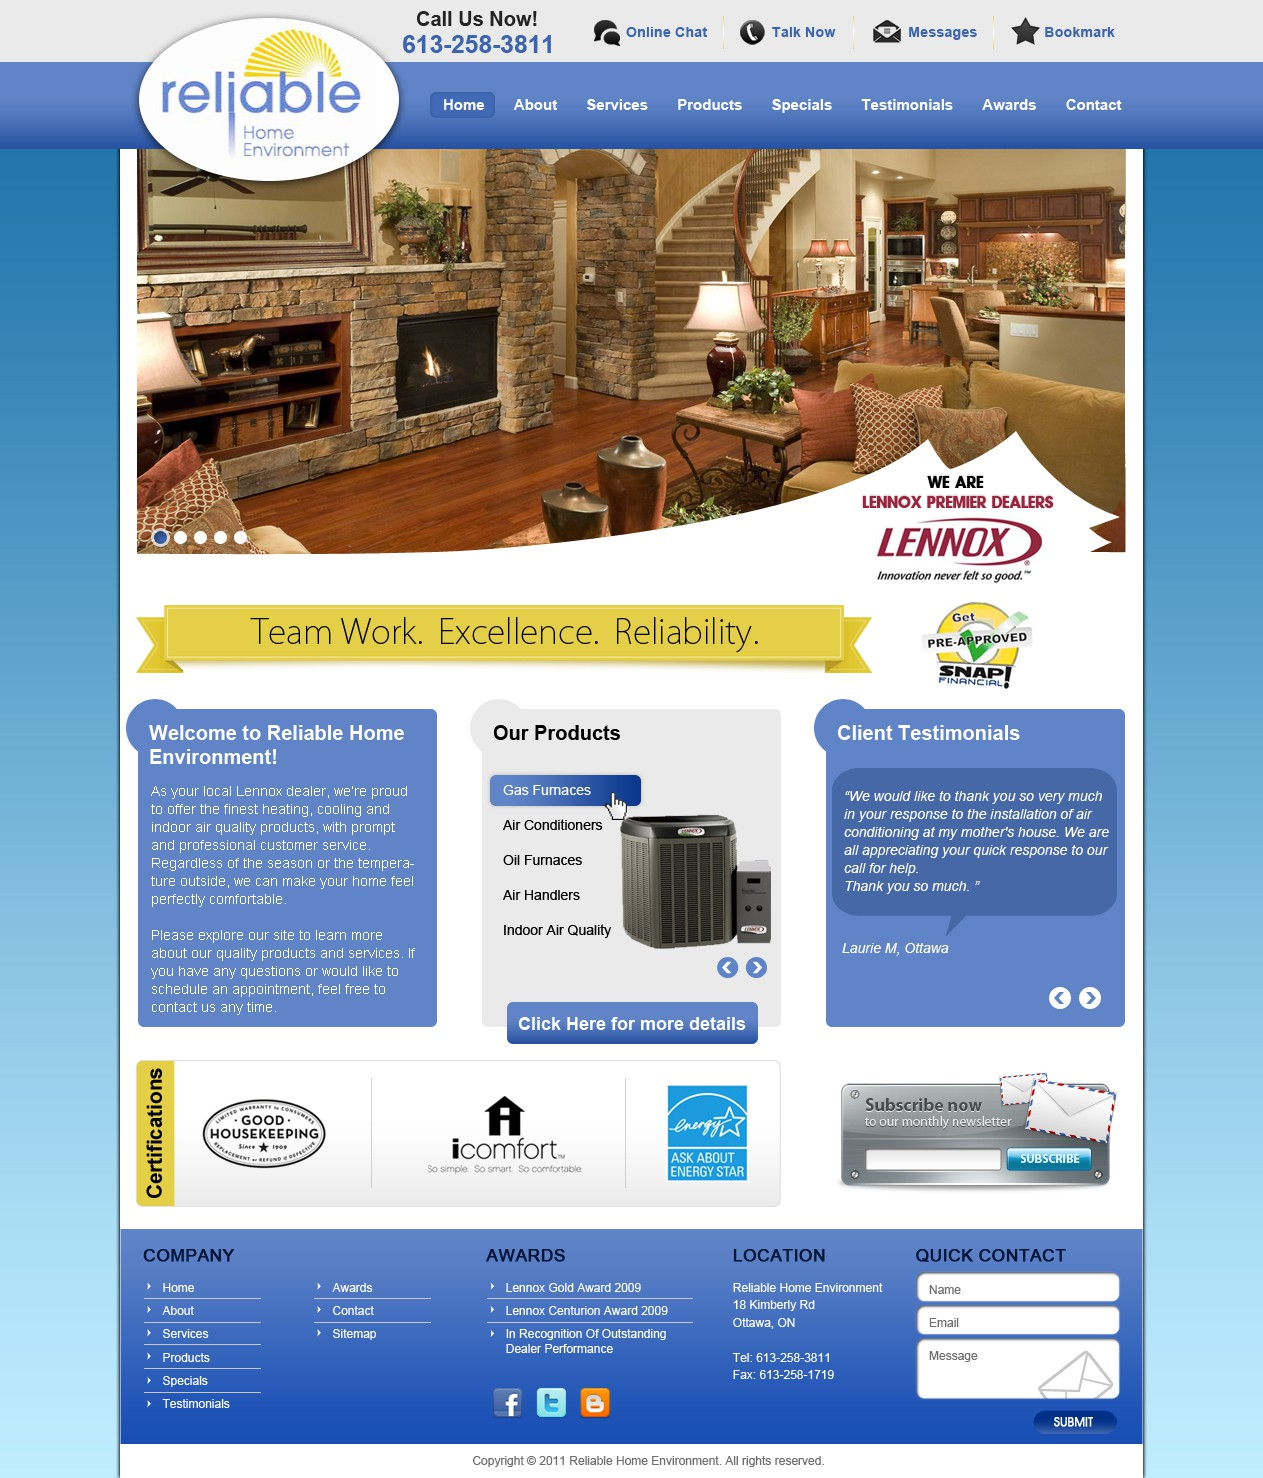 Help Reliable Home Environment with a new website design